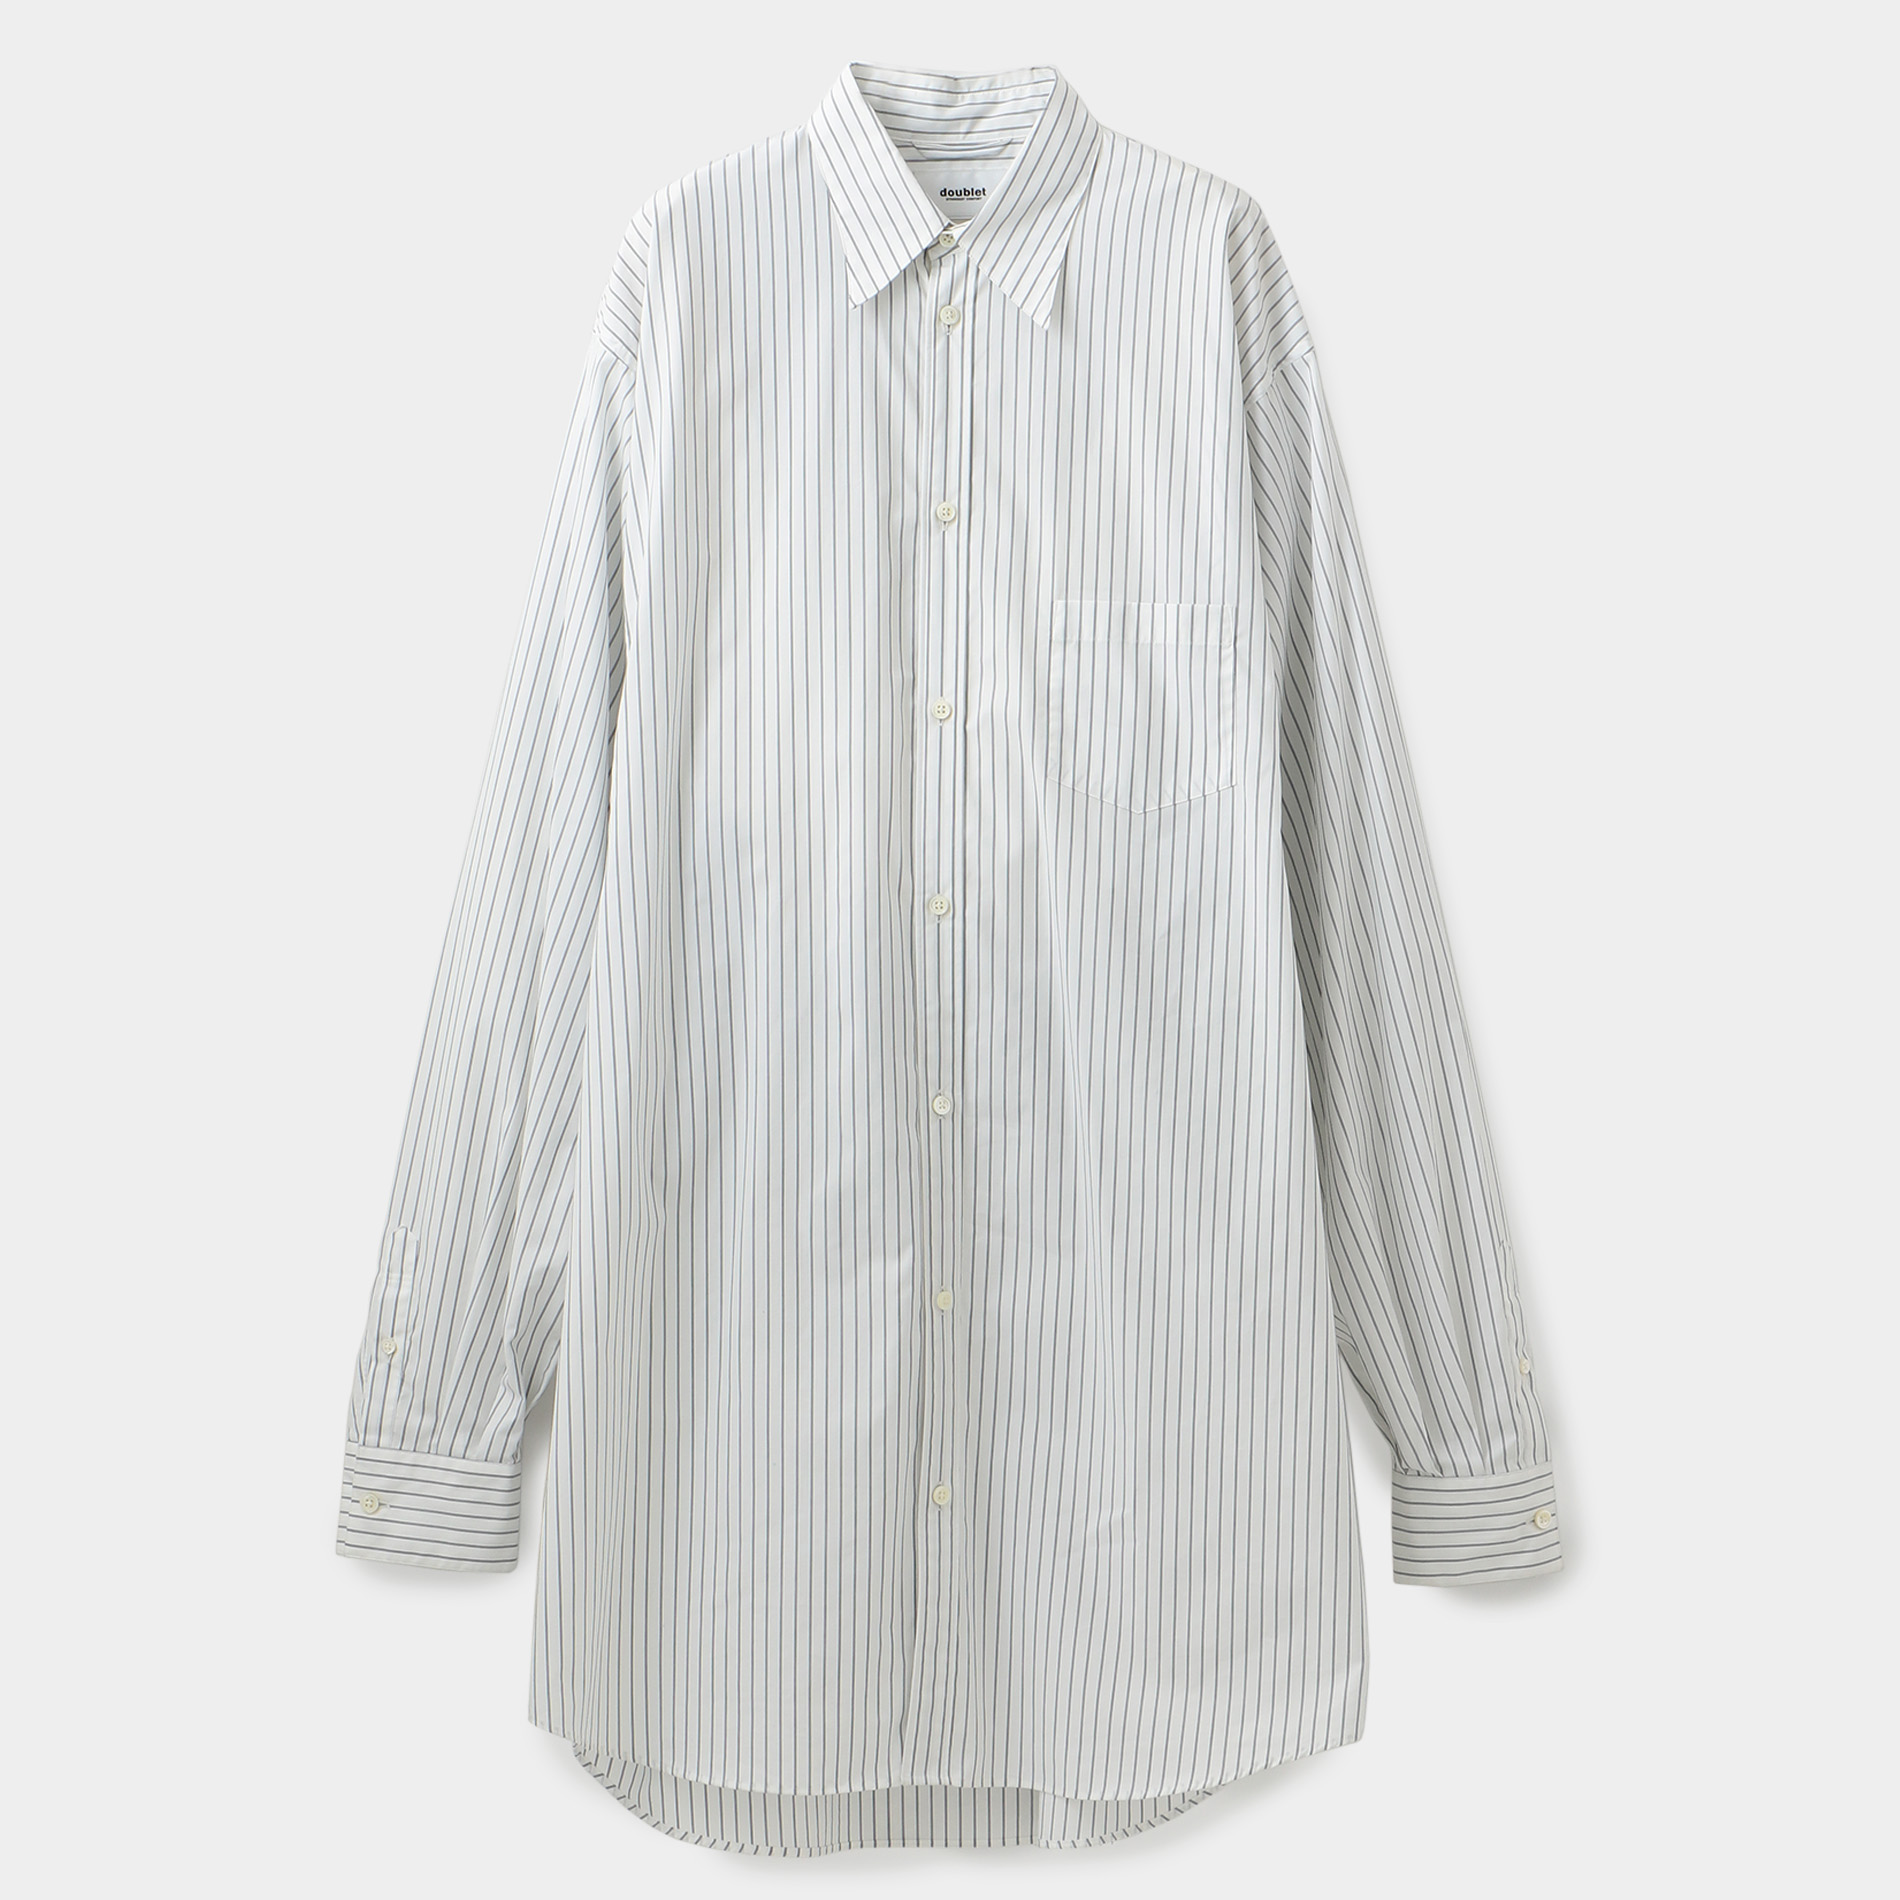 【doublet】MEN SURPRISE PATTERN SHIRT 19AW21SH68